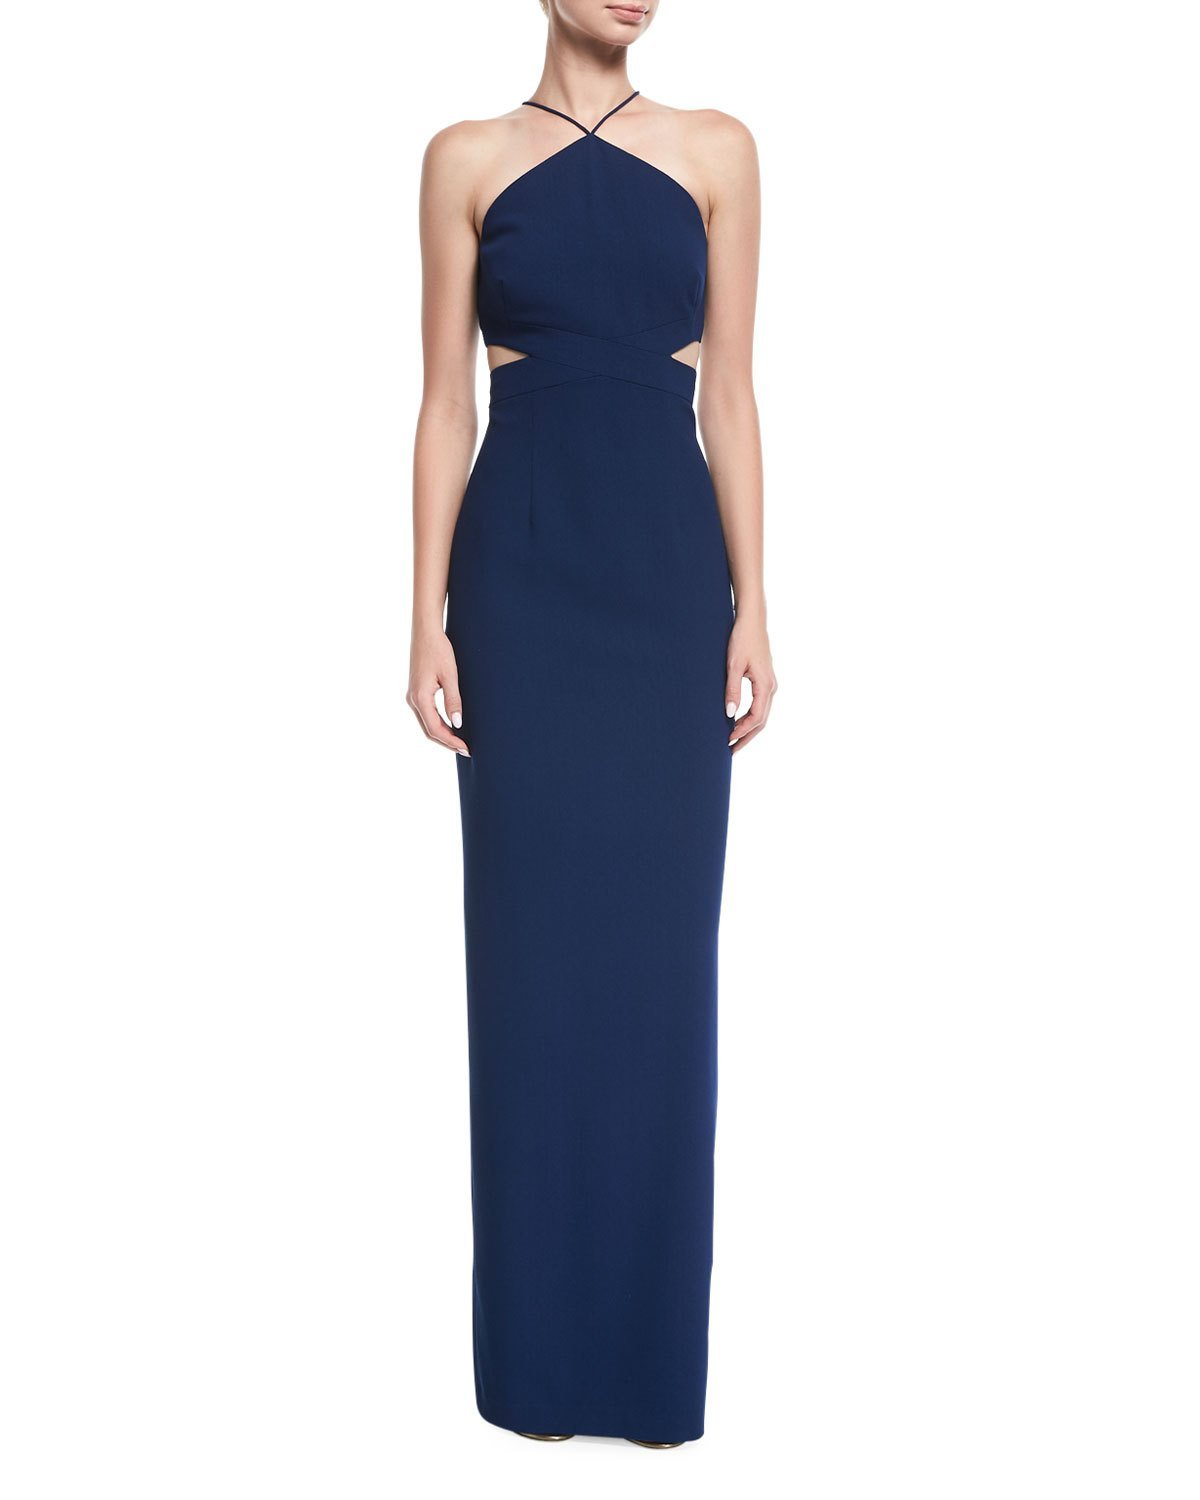 Aidan Mattox - MN1E202134 Halter Crepe Cutout Column Evening Gown in Blue